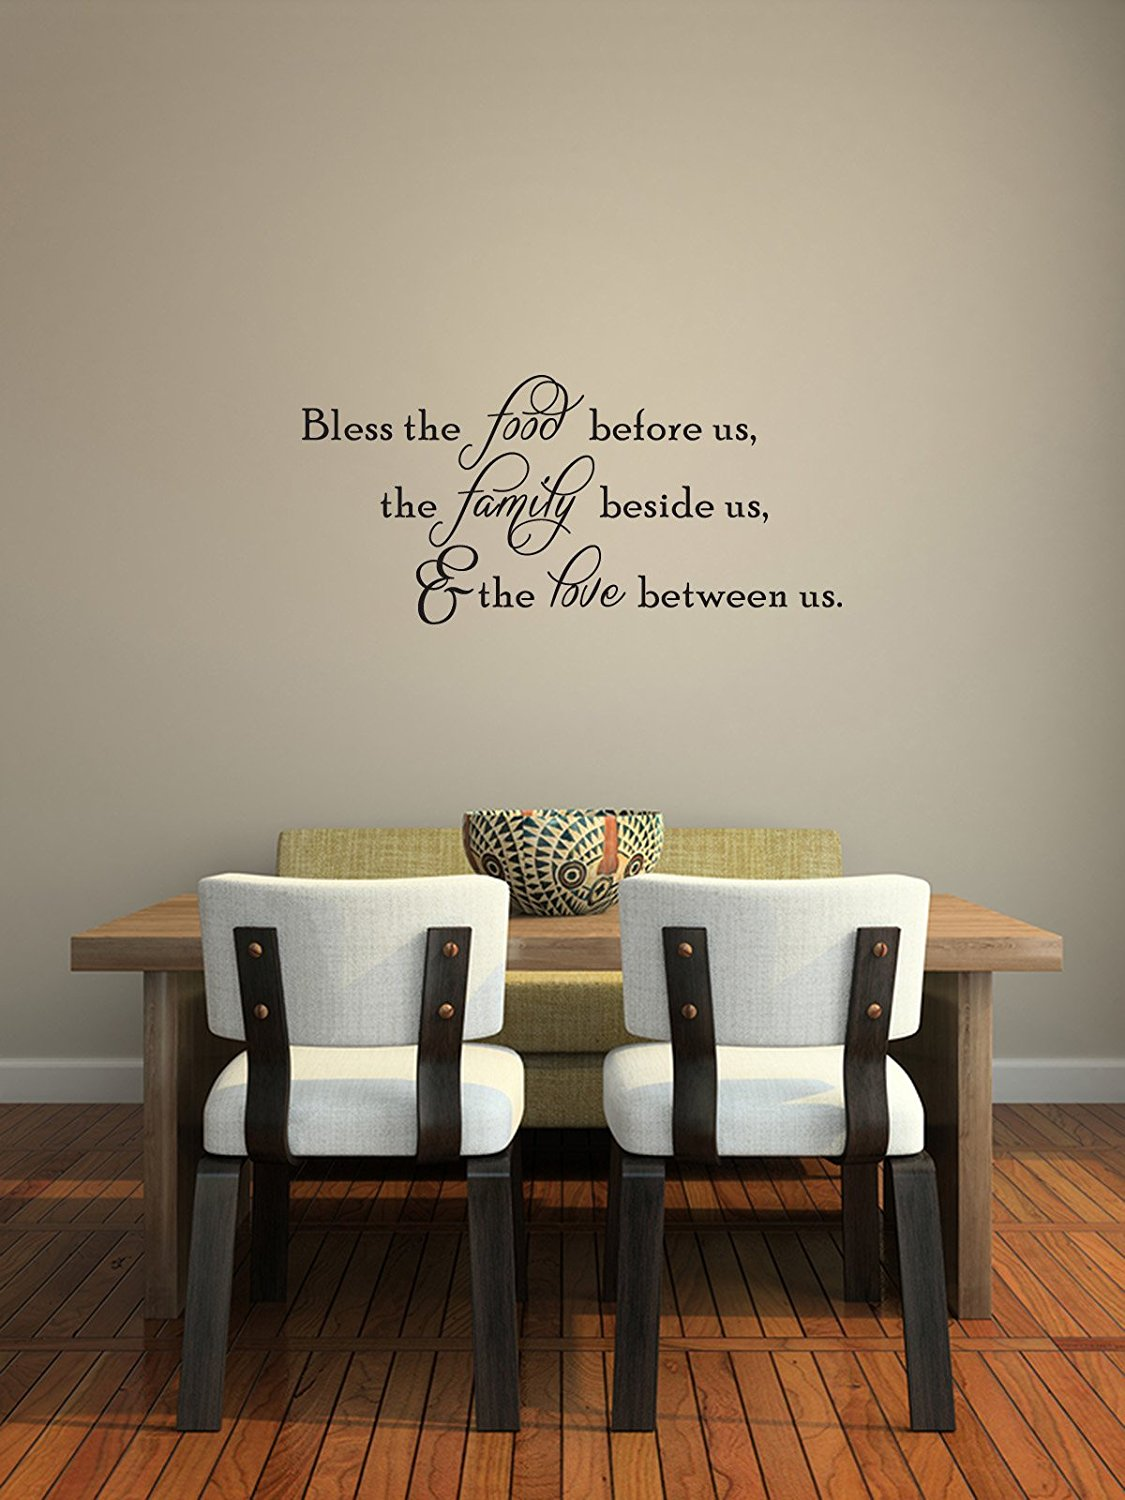 Bless The Food Before Us Vinyl Wall Decal Thanksgiving Quotes Holiday Home Kitchen Sticker Fall Decor